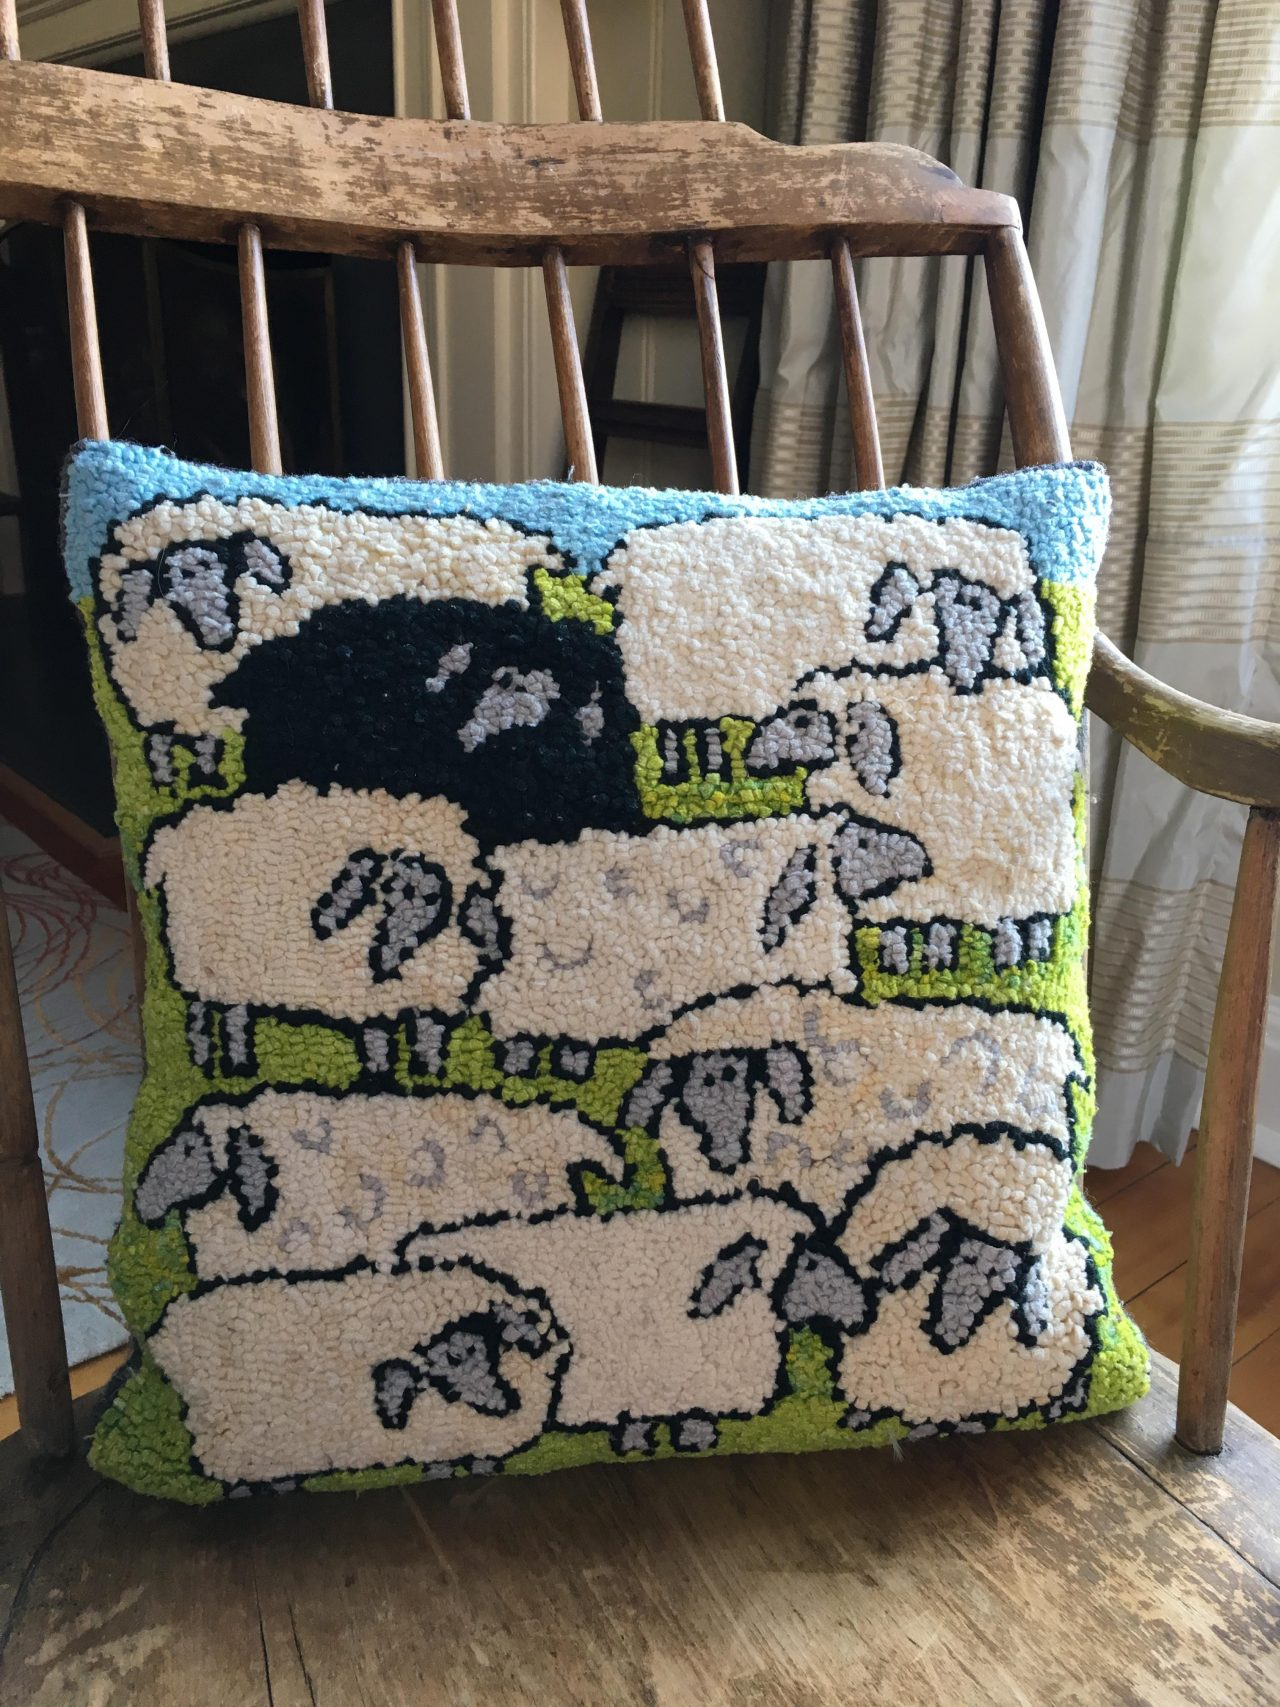 A hooked cushion with 10 white sheep and one black sheep on a wooden chair by Yvonne Iten-Scott.